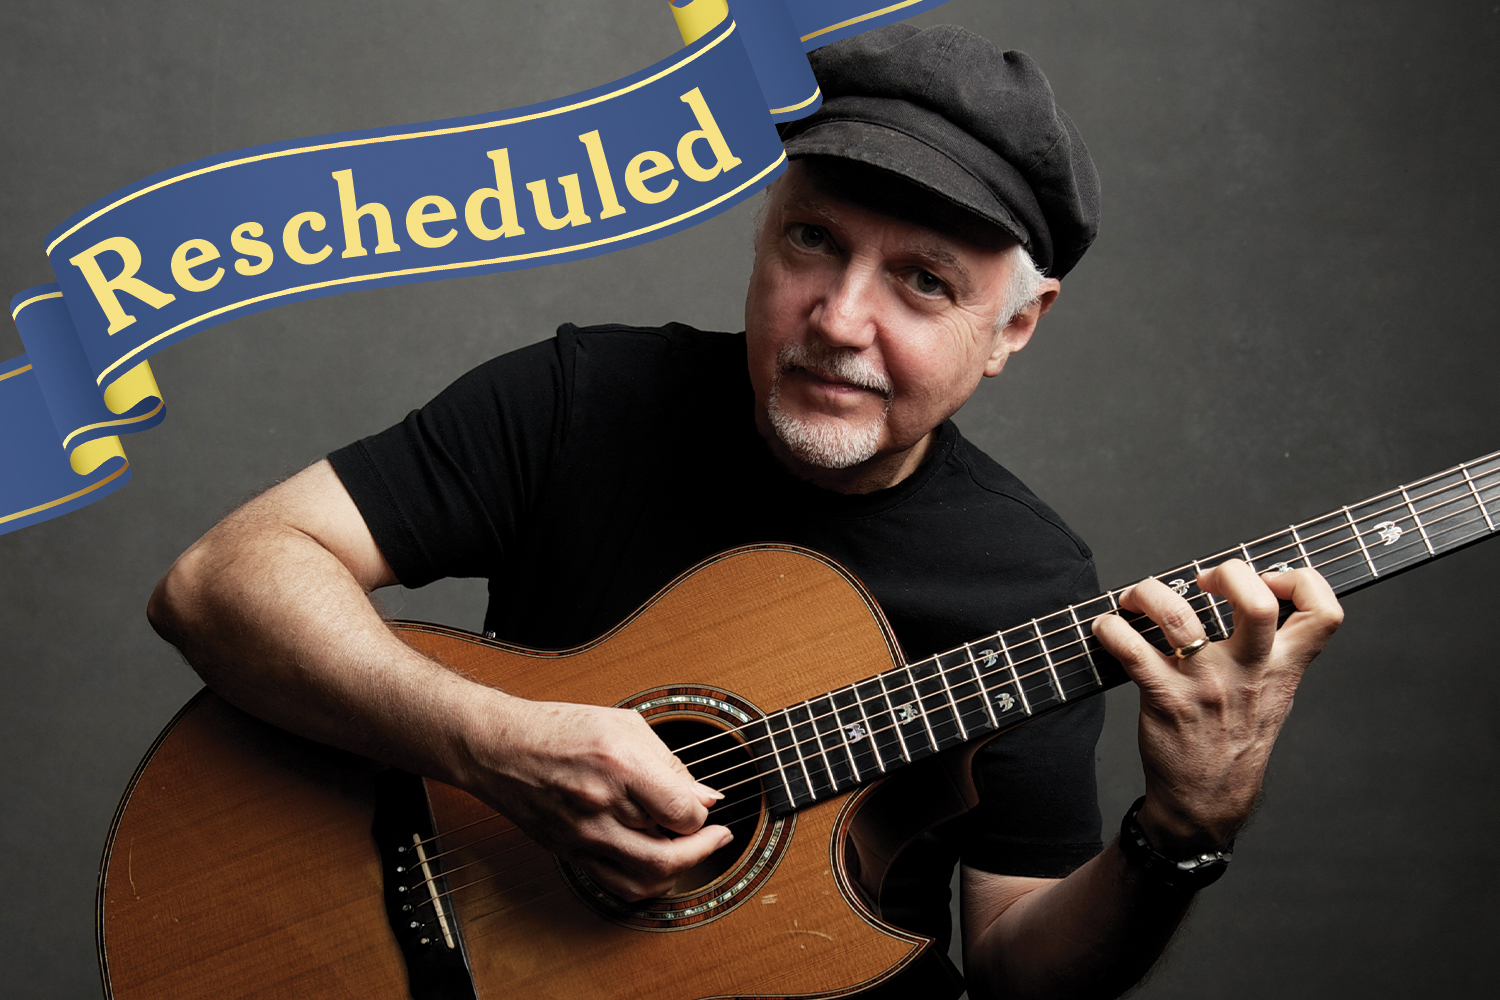 PhilKeaggy_Rescheduled.jpg